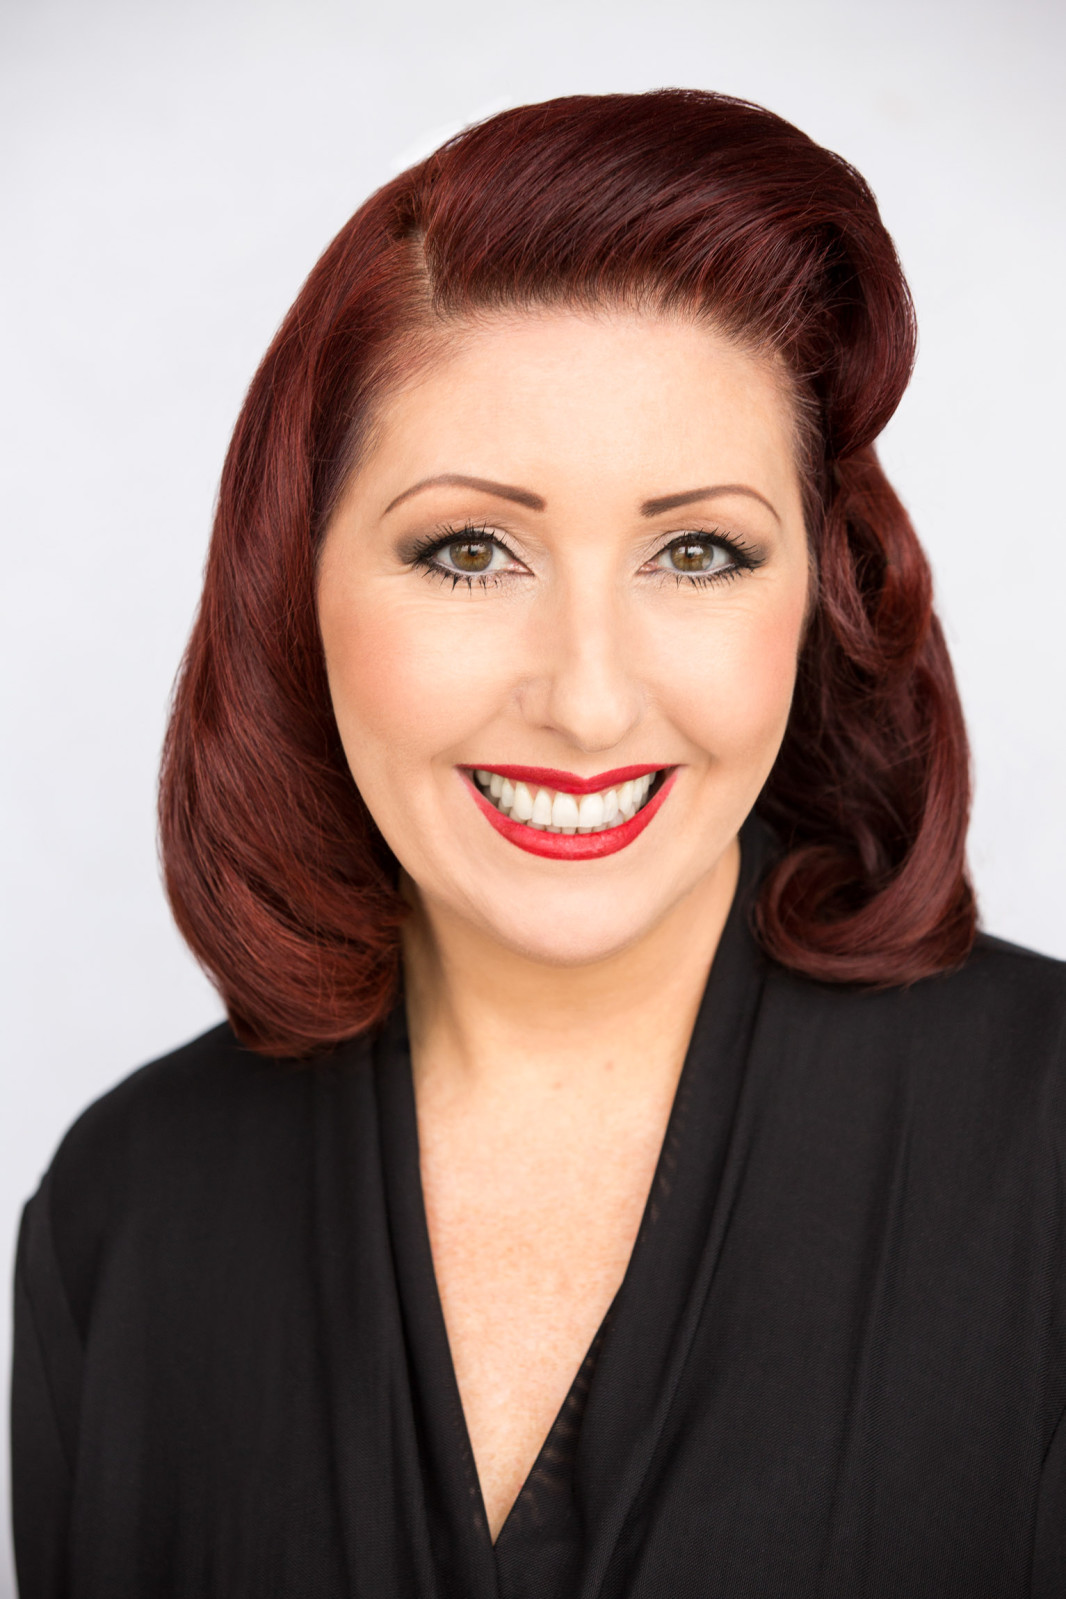 Professional Woman in Black Suit With Fifties Hairstyle Headshot ...